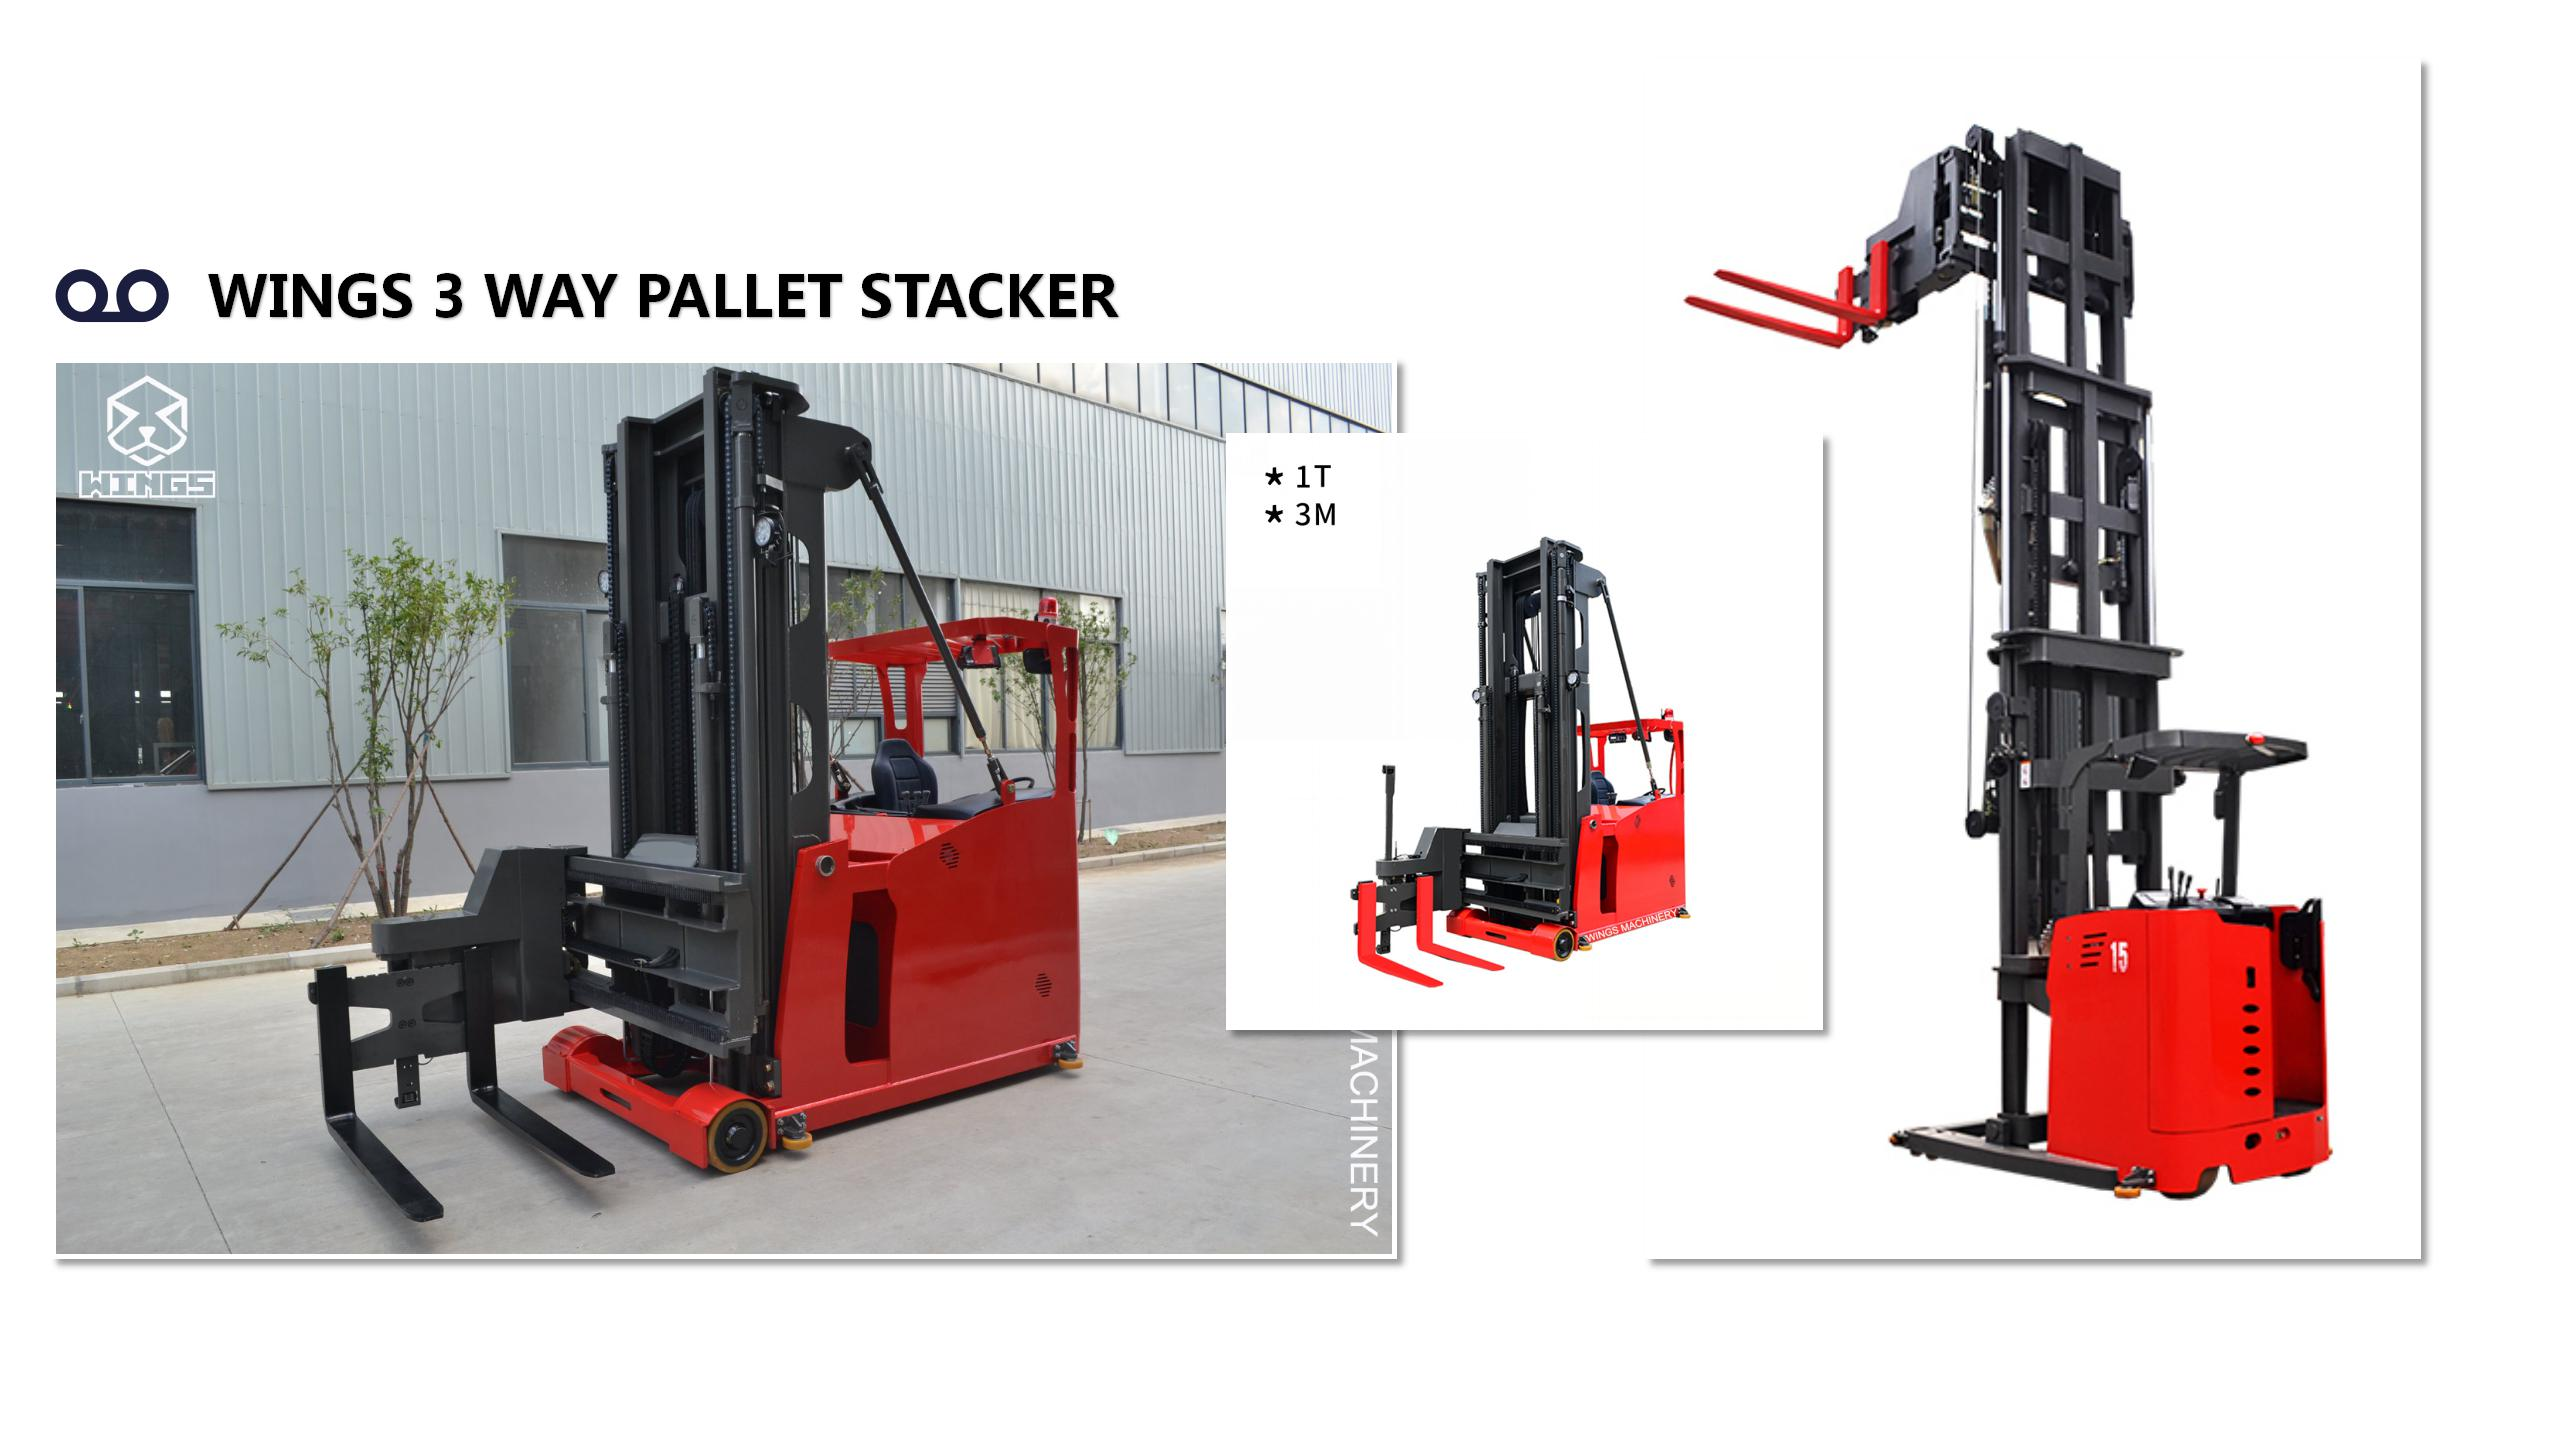 WINGS 3 WAY PALLET STACKER GOOD QUALITY -ORIGINAL